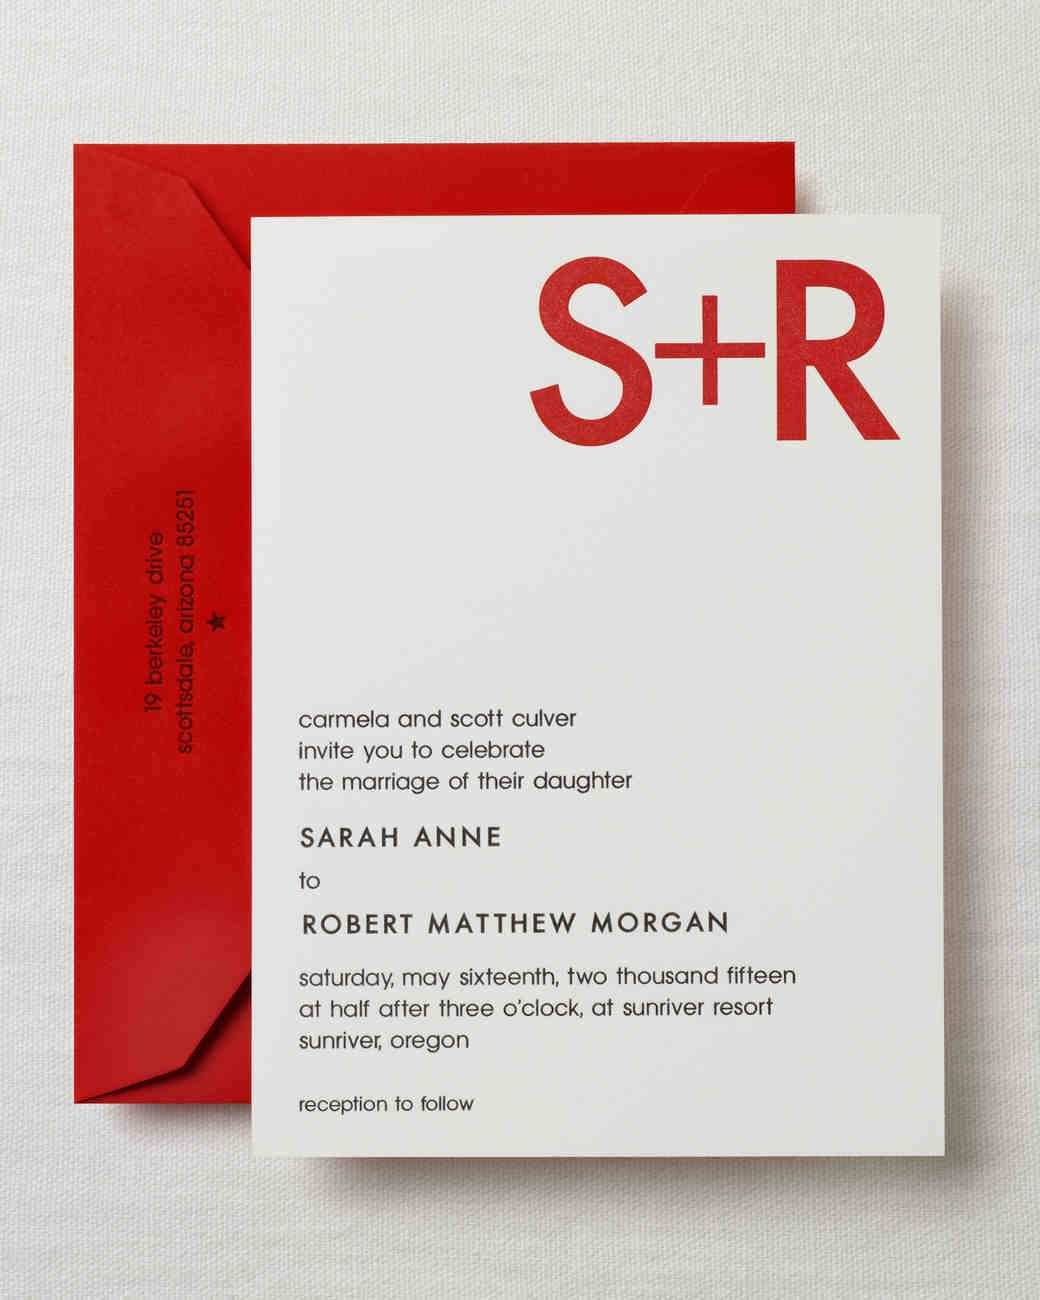 30 Modern Wedding Invitations We Love | Pinterest | Offbeat bride ...